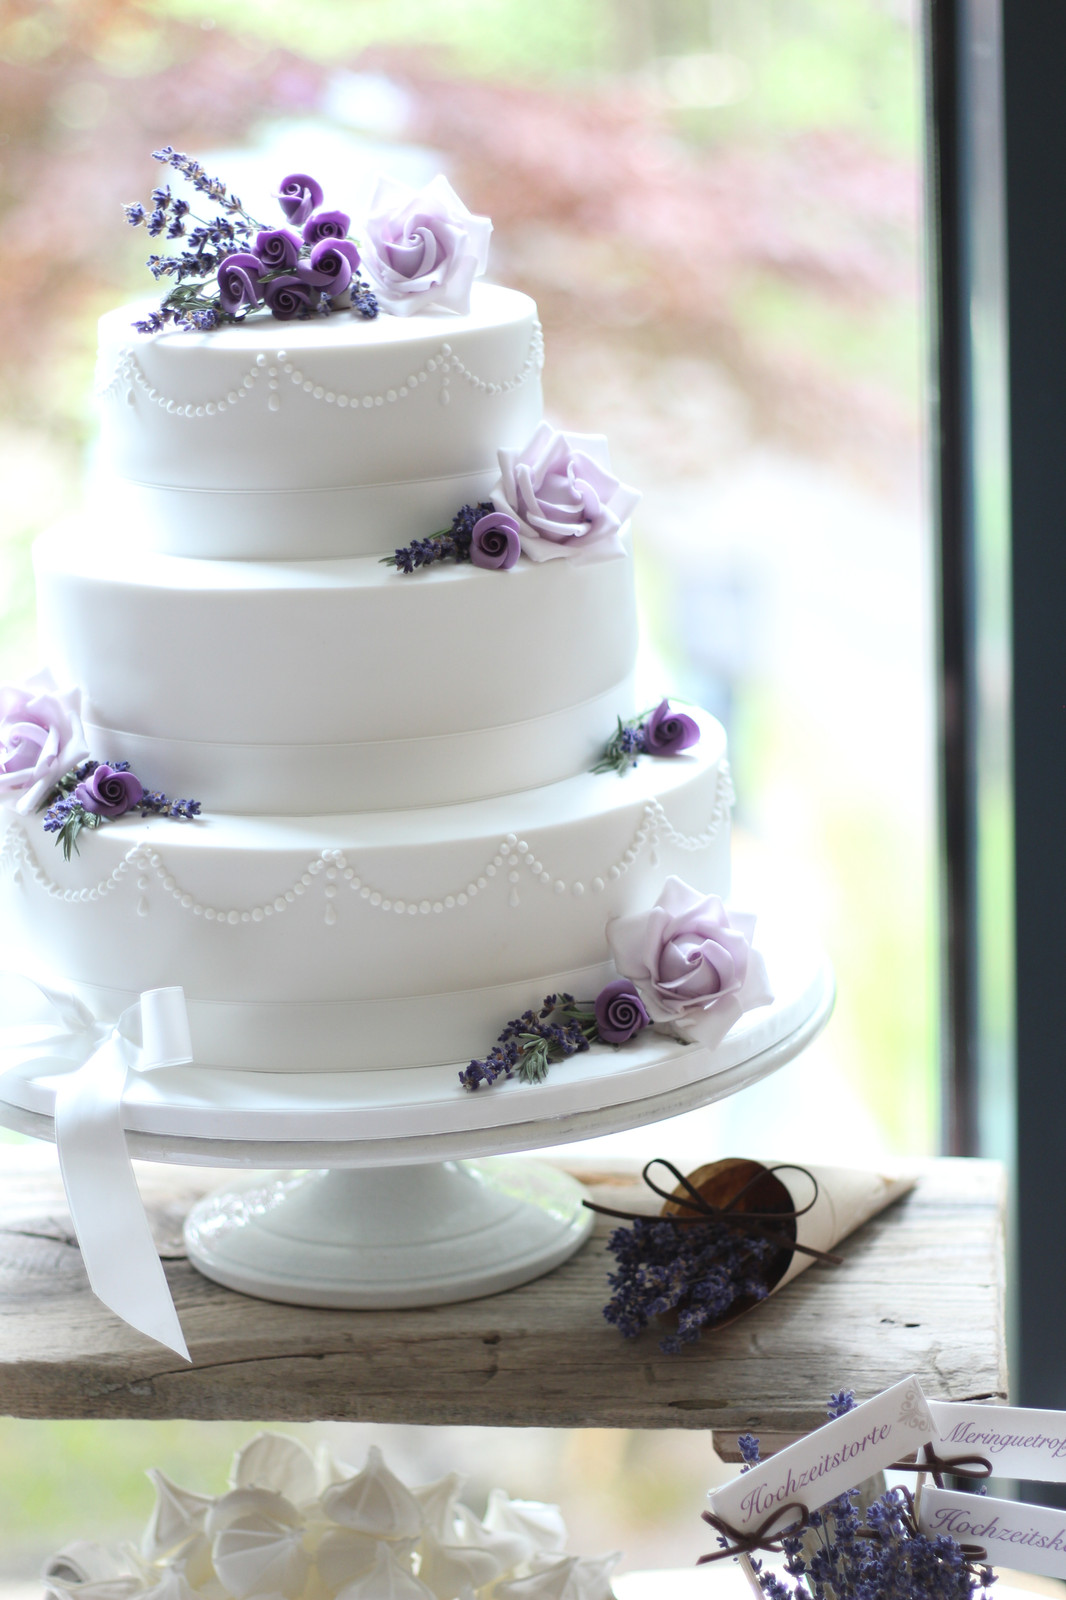 Cakecouture Sweet Table Lavender Love